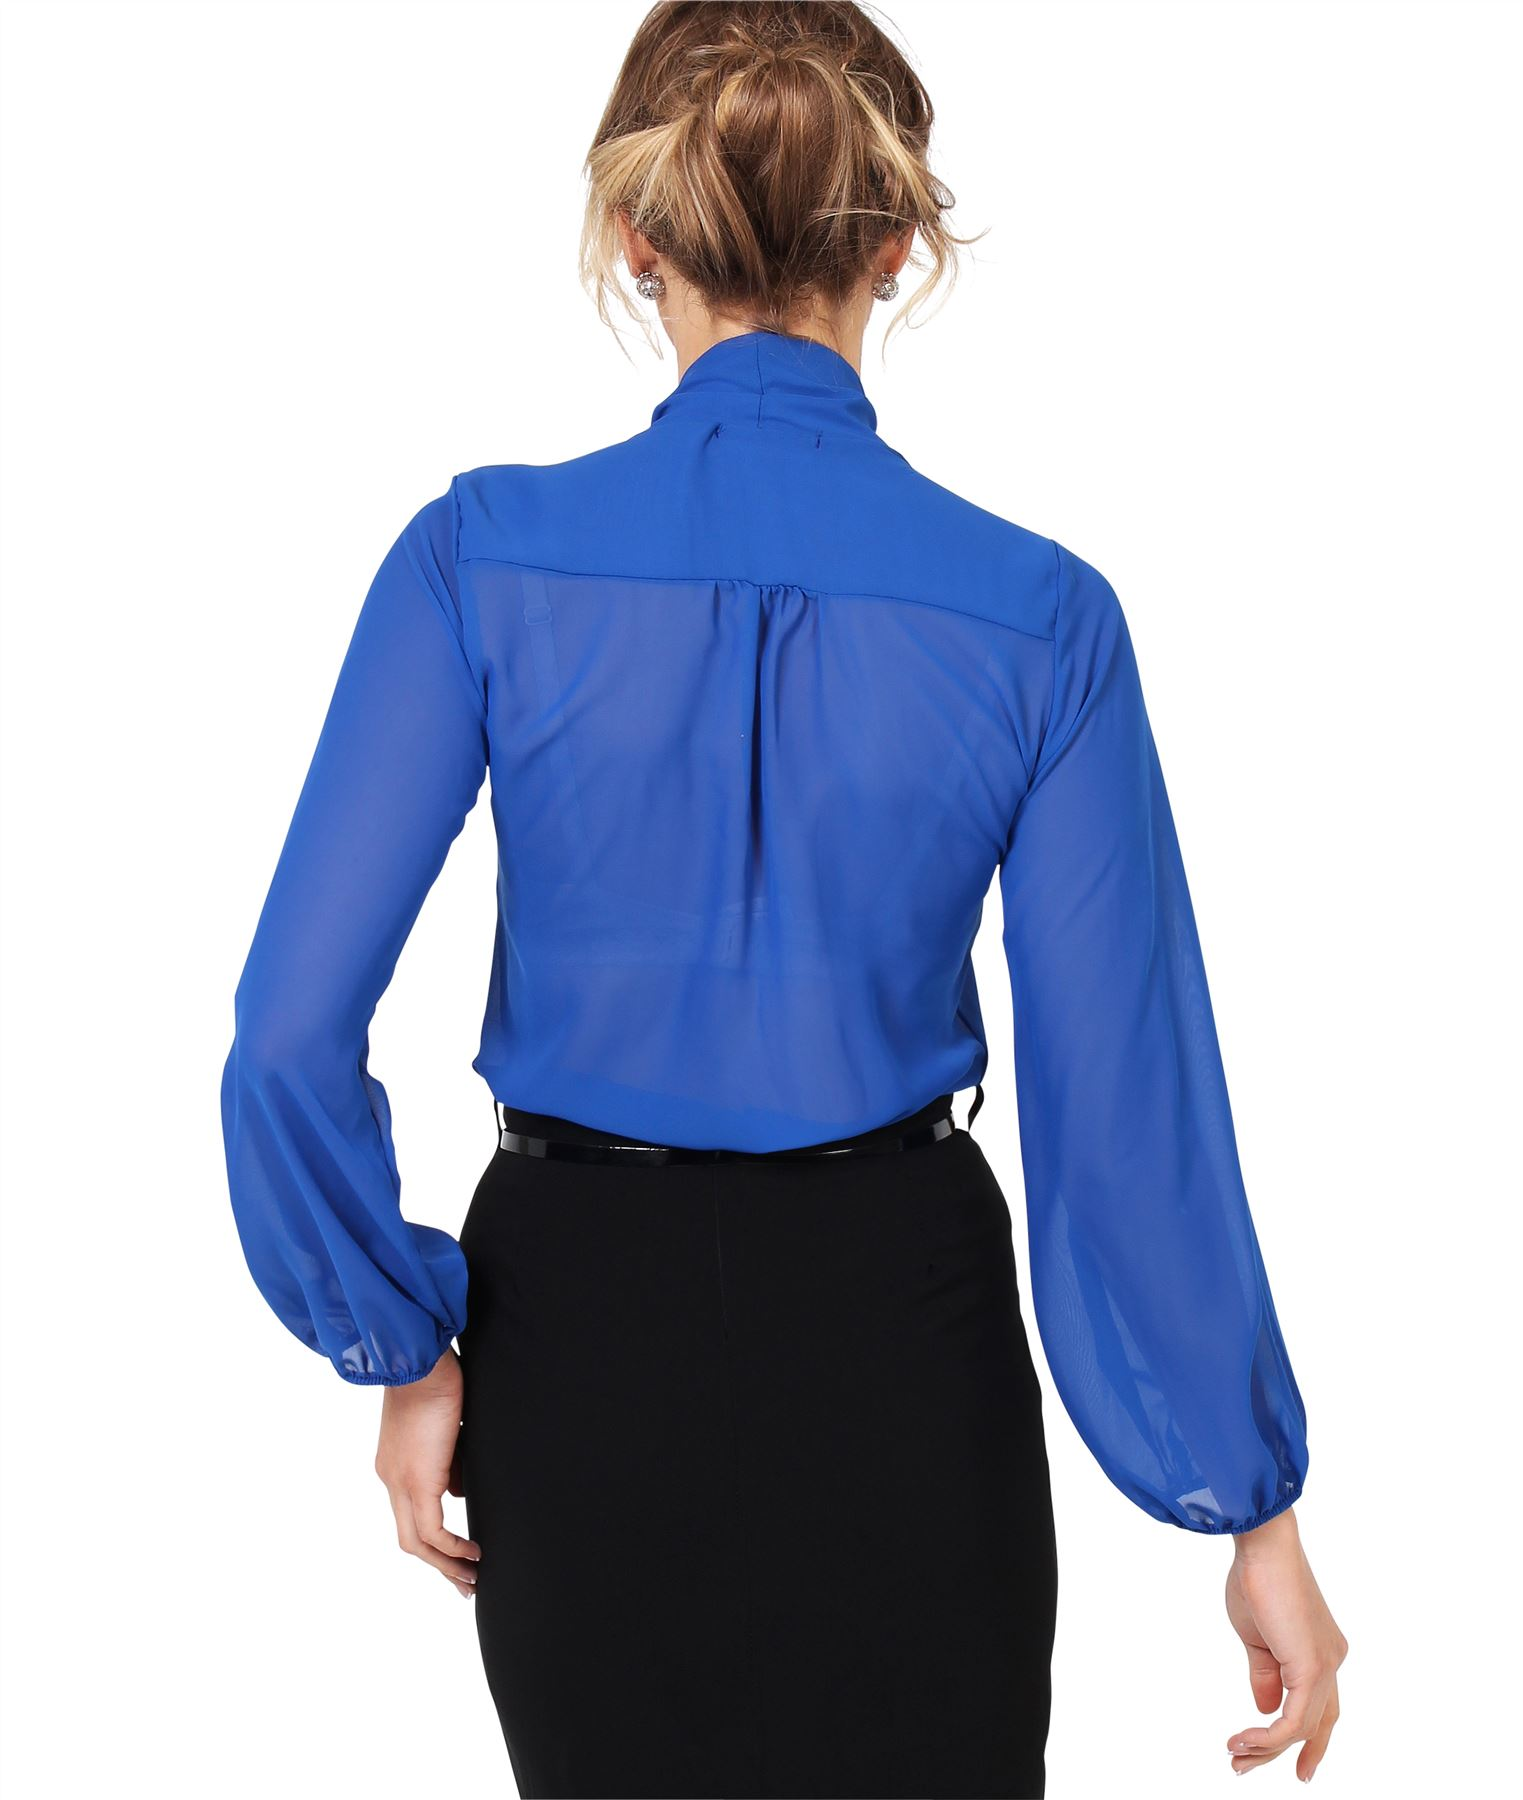 Womens-Ladies-Chiffon-Blouse-Long-Sleeve-Pussy-Bow-Top-Plain-Shirt-Office-Party thumbnail 18